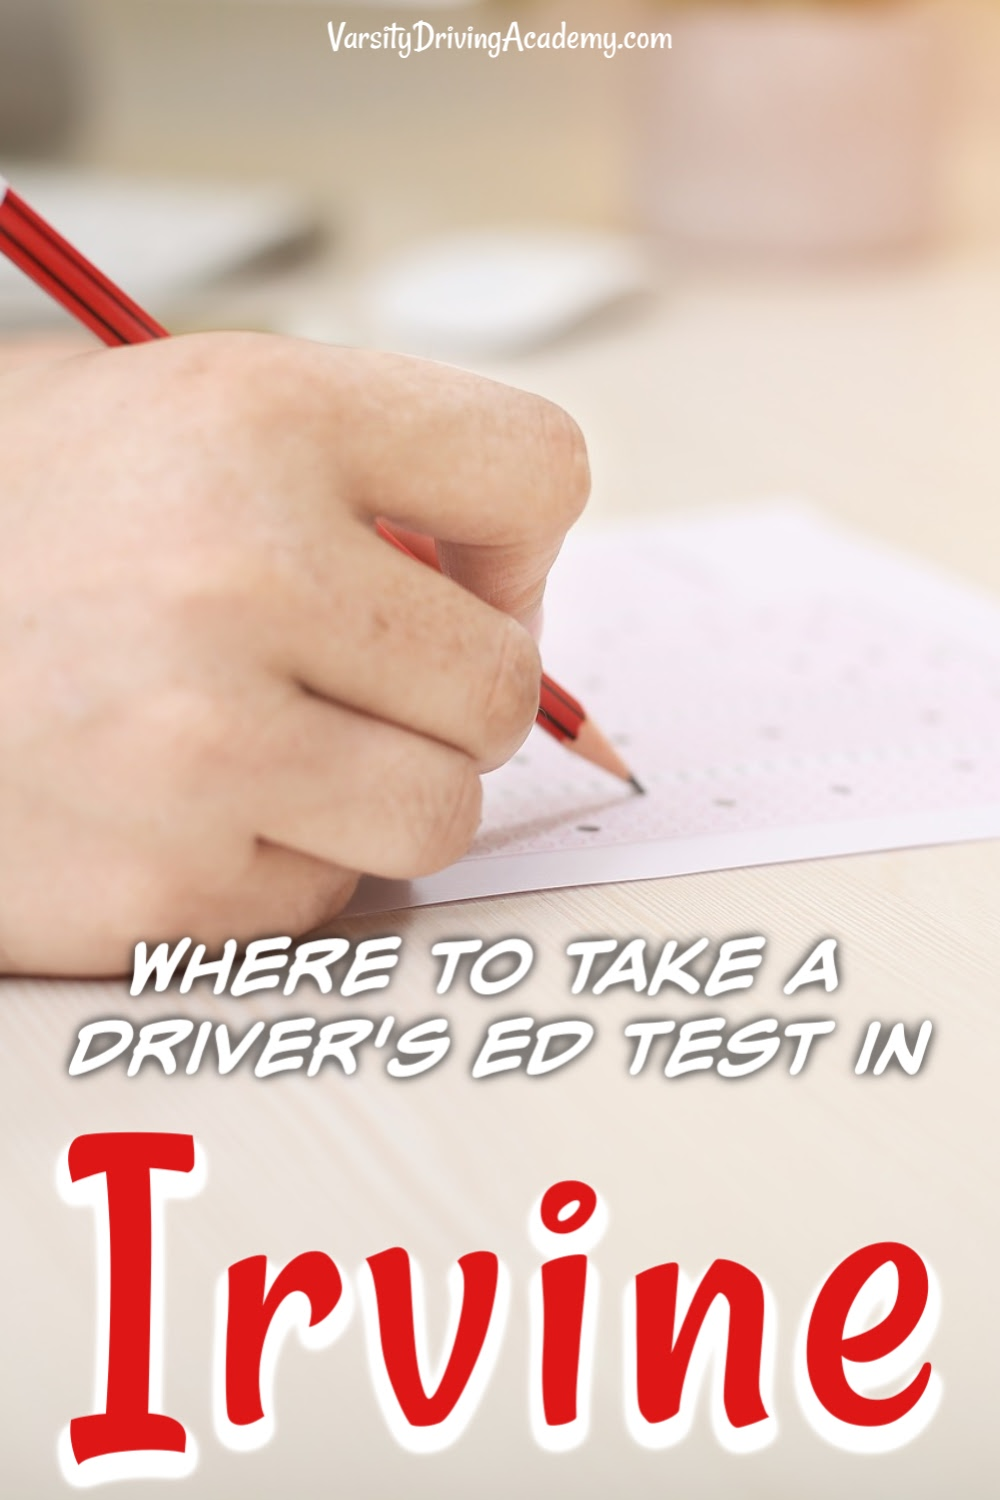 Knowing where to take drivers ed test in Irvine is important as you can not get your license until you pass both of the driving tests in Irvine.